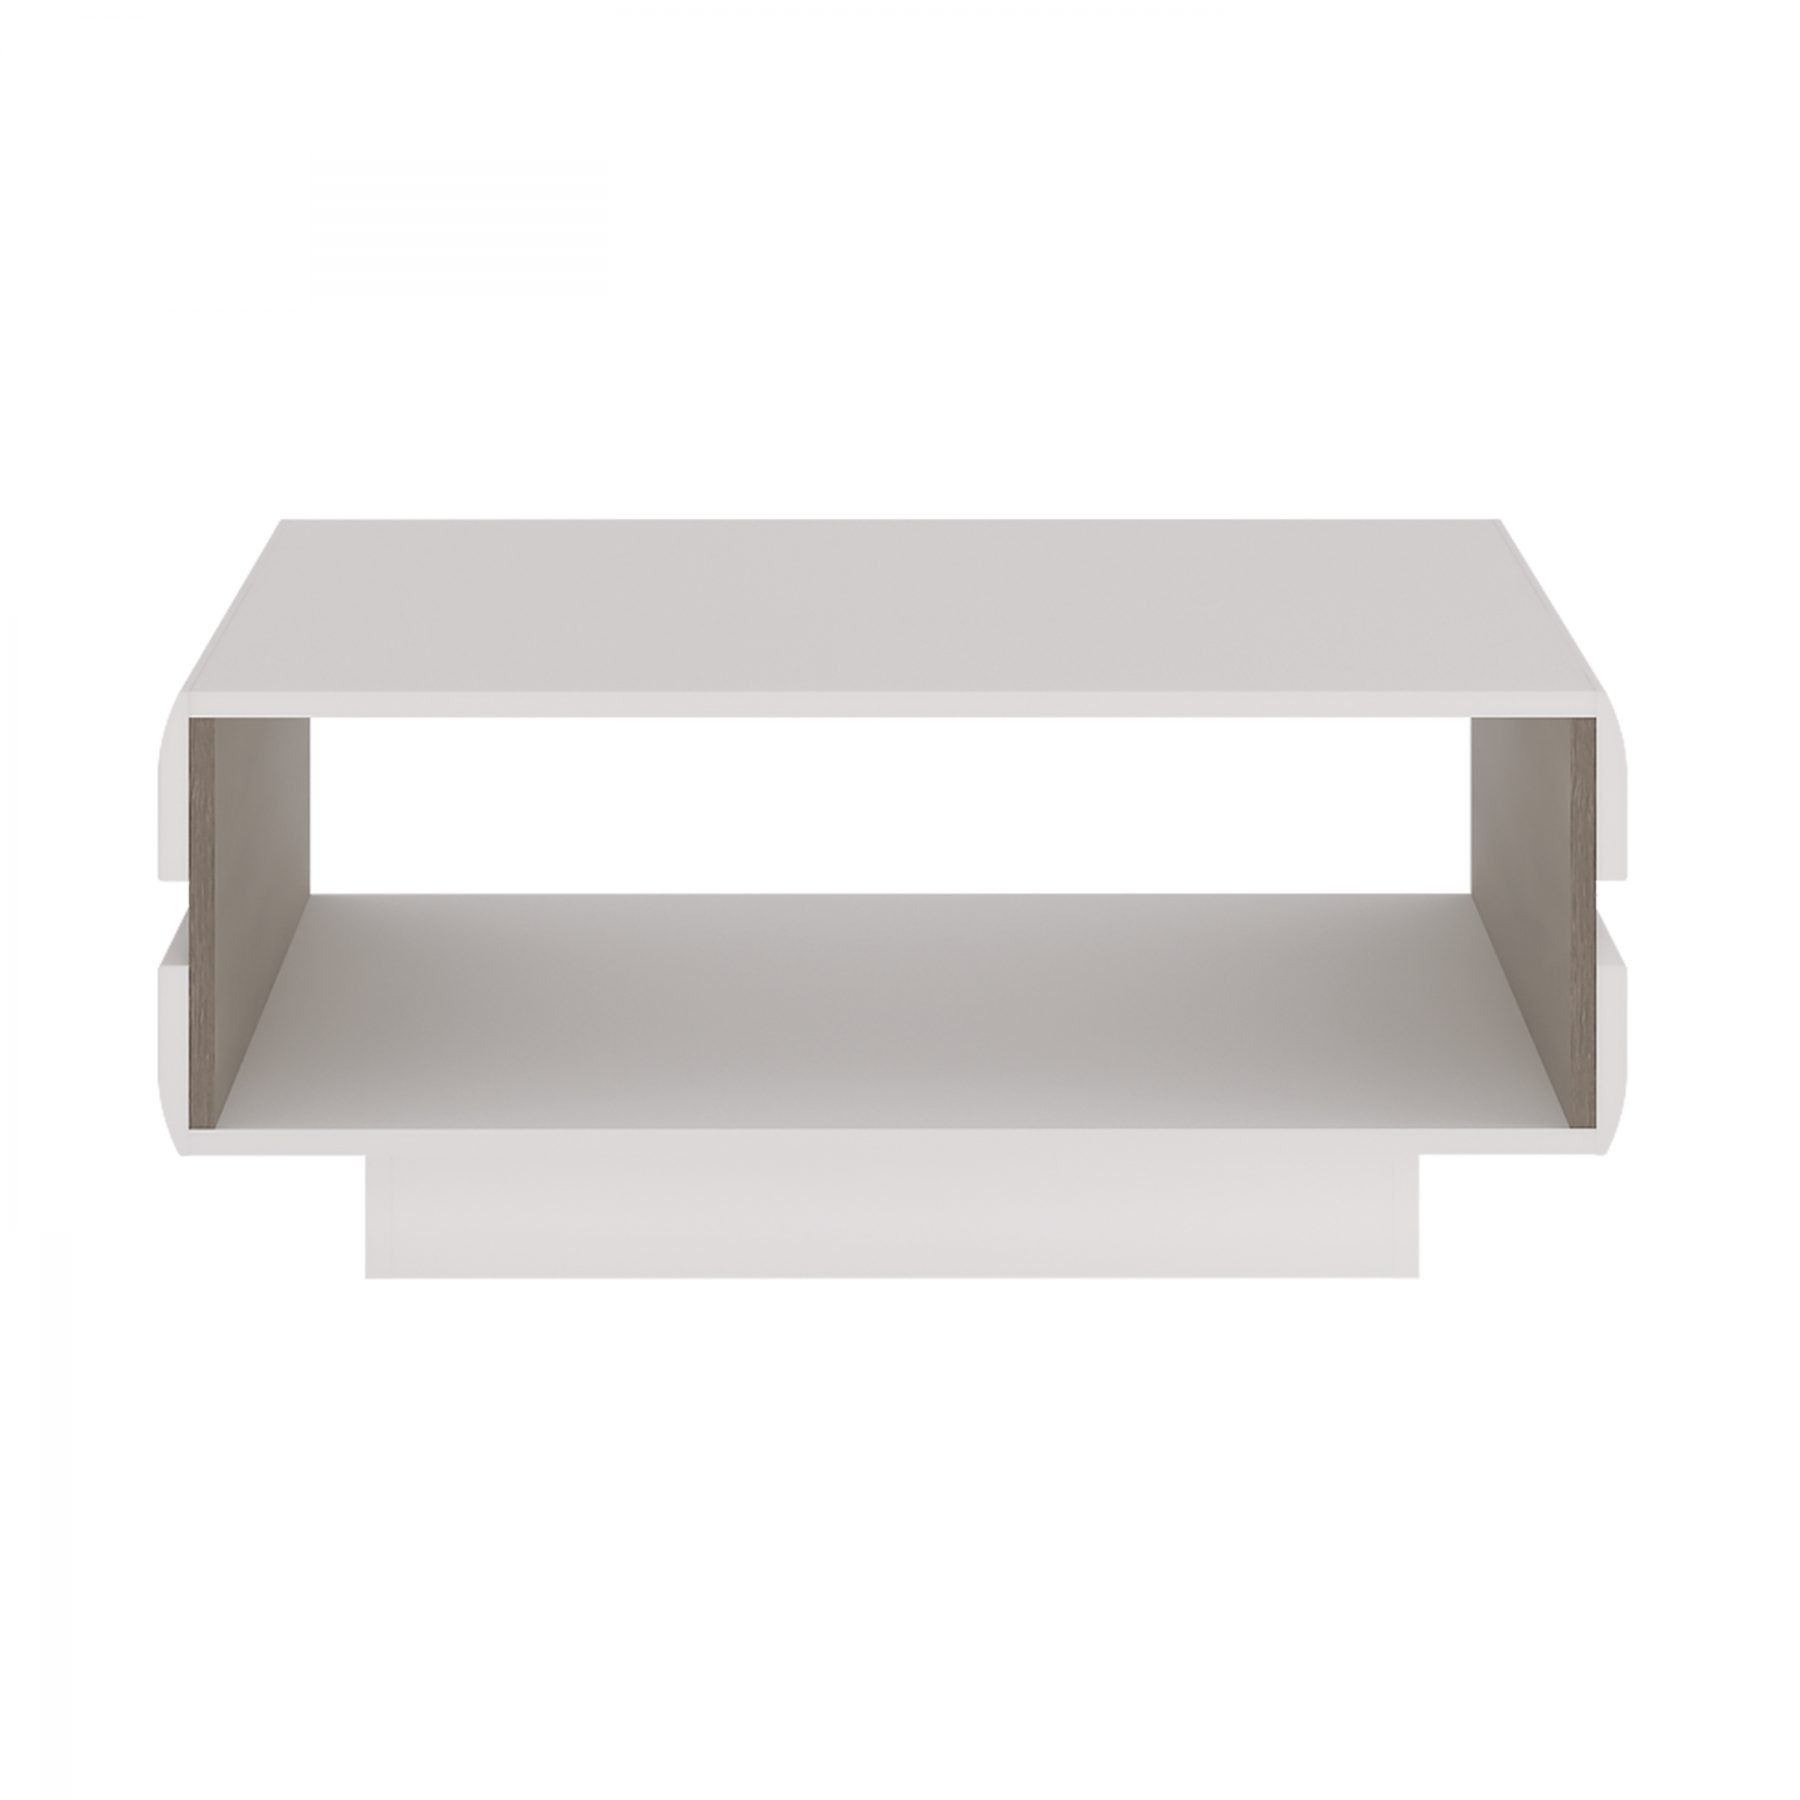 Mode White Gloss Coffee Table 1